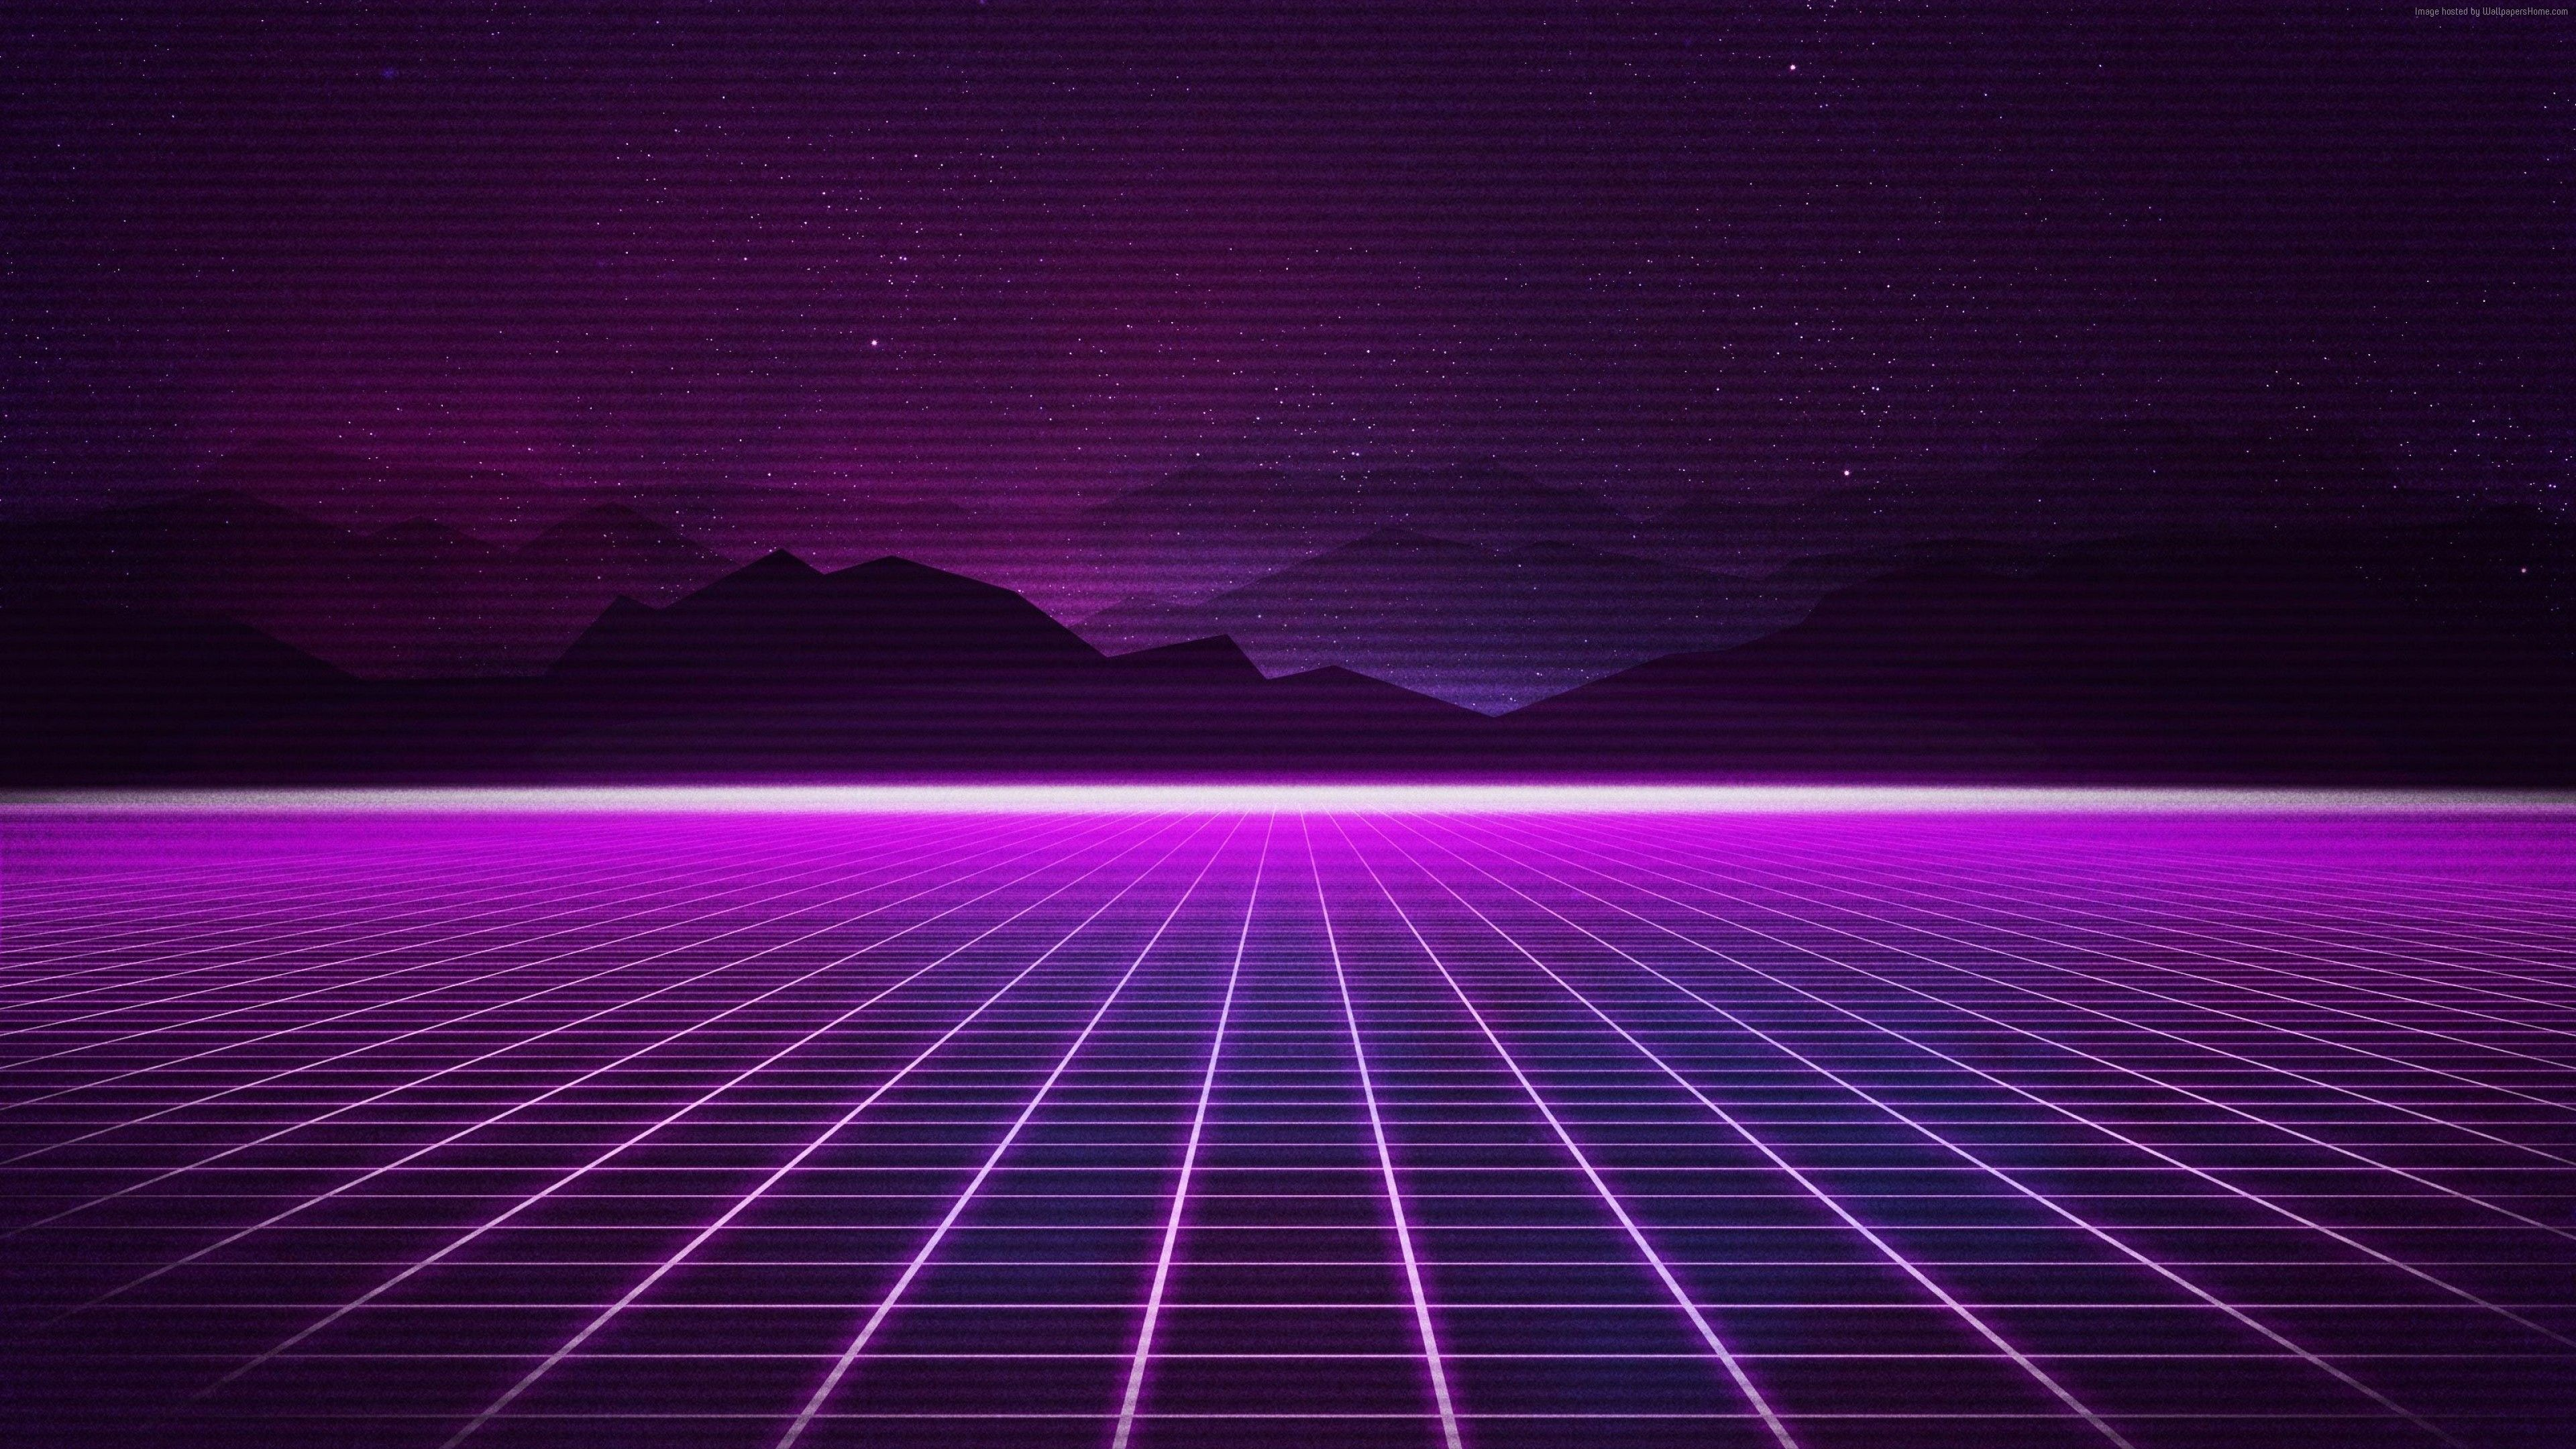 Wallpaper Retrowave Purple Lines 4k Art Https Www Pxwall Com Wallpaper Retrowave Purple Lines 4 Vaporwave Wallpaper Wallpaper Pc 4k Wallpapers For Pc